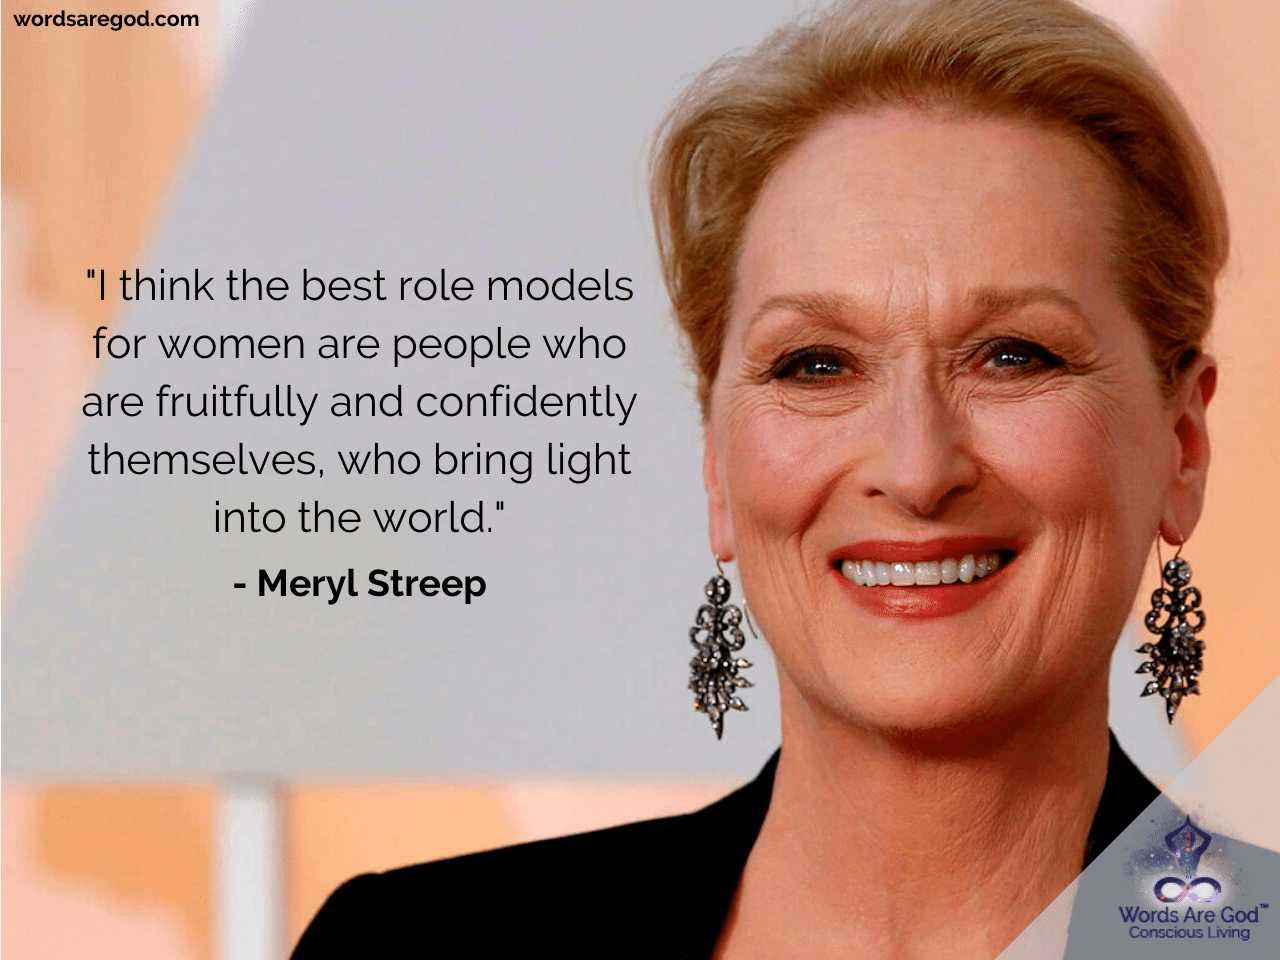 Meryl streep Motivational Quotes by Meryl Streep